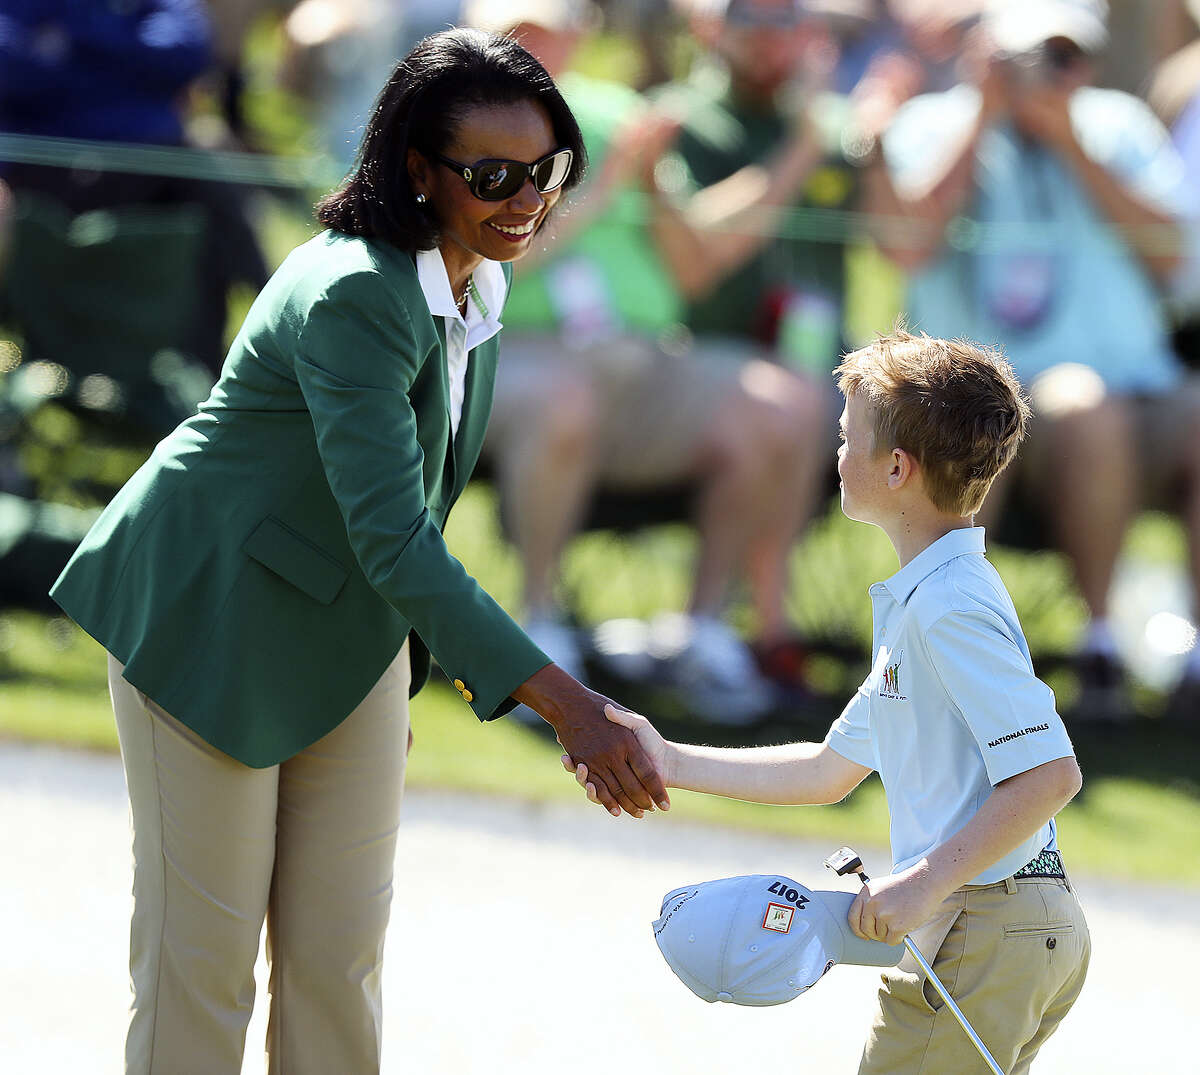 Carter Kontur, right, shakes hands with former Secretary of State Condoleezza Rice after putting on the 18th green during the Drive Chip & Putt finals at Augusta National on Sunday.